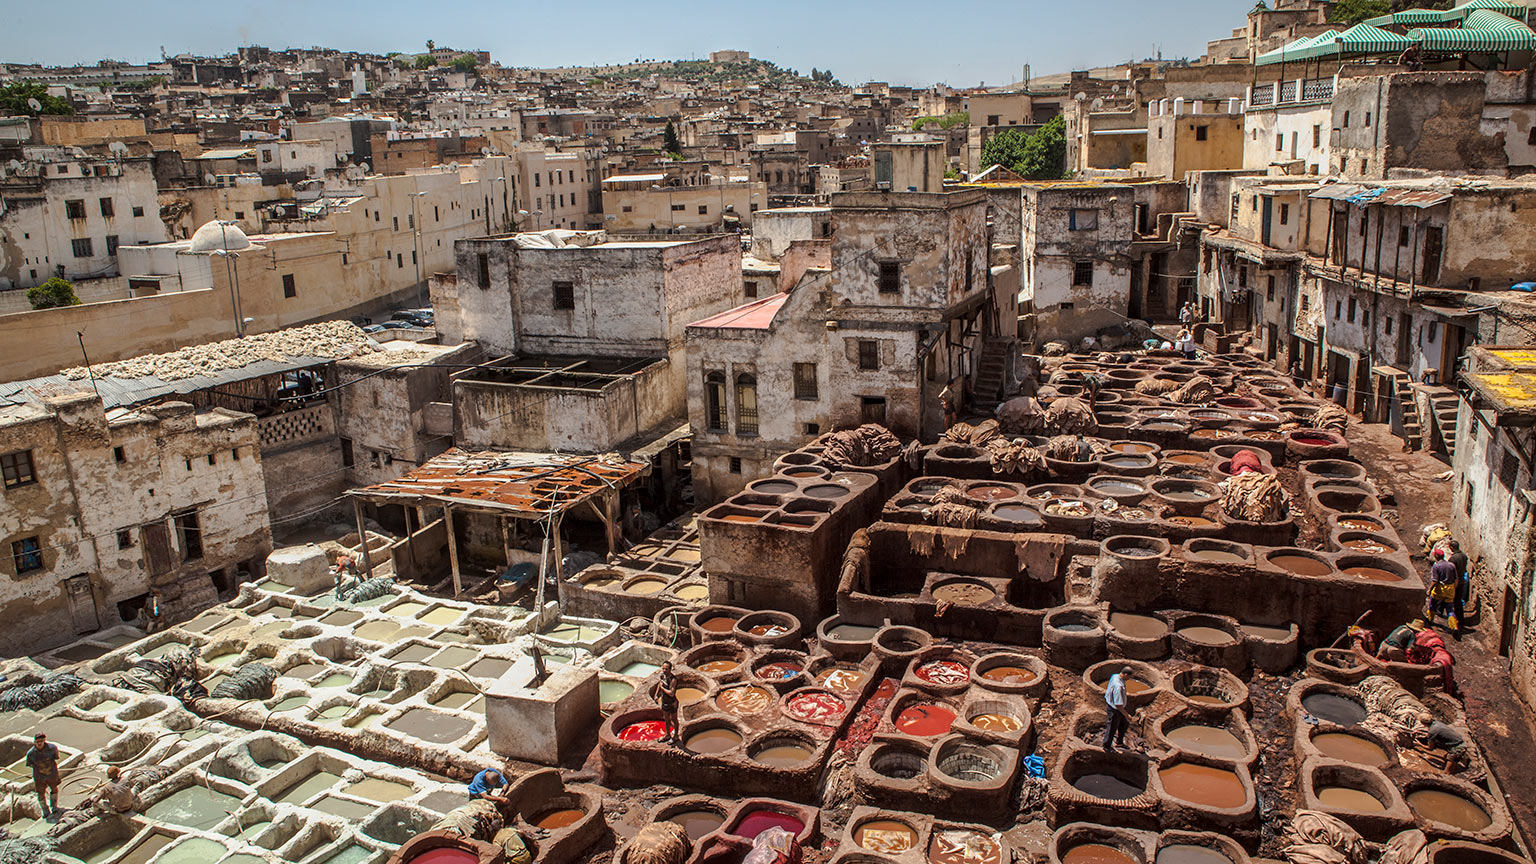 Morocco-Fes-Tannery-Landscape-Ruth-Murphy